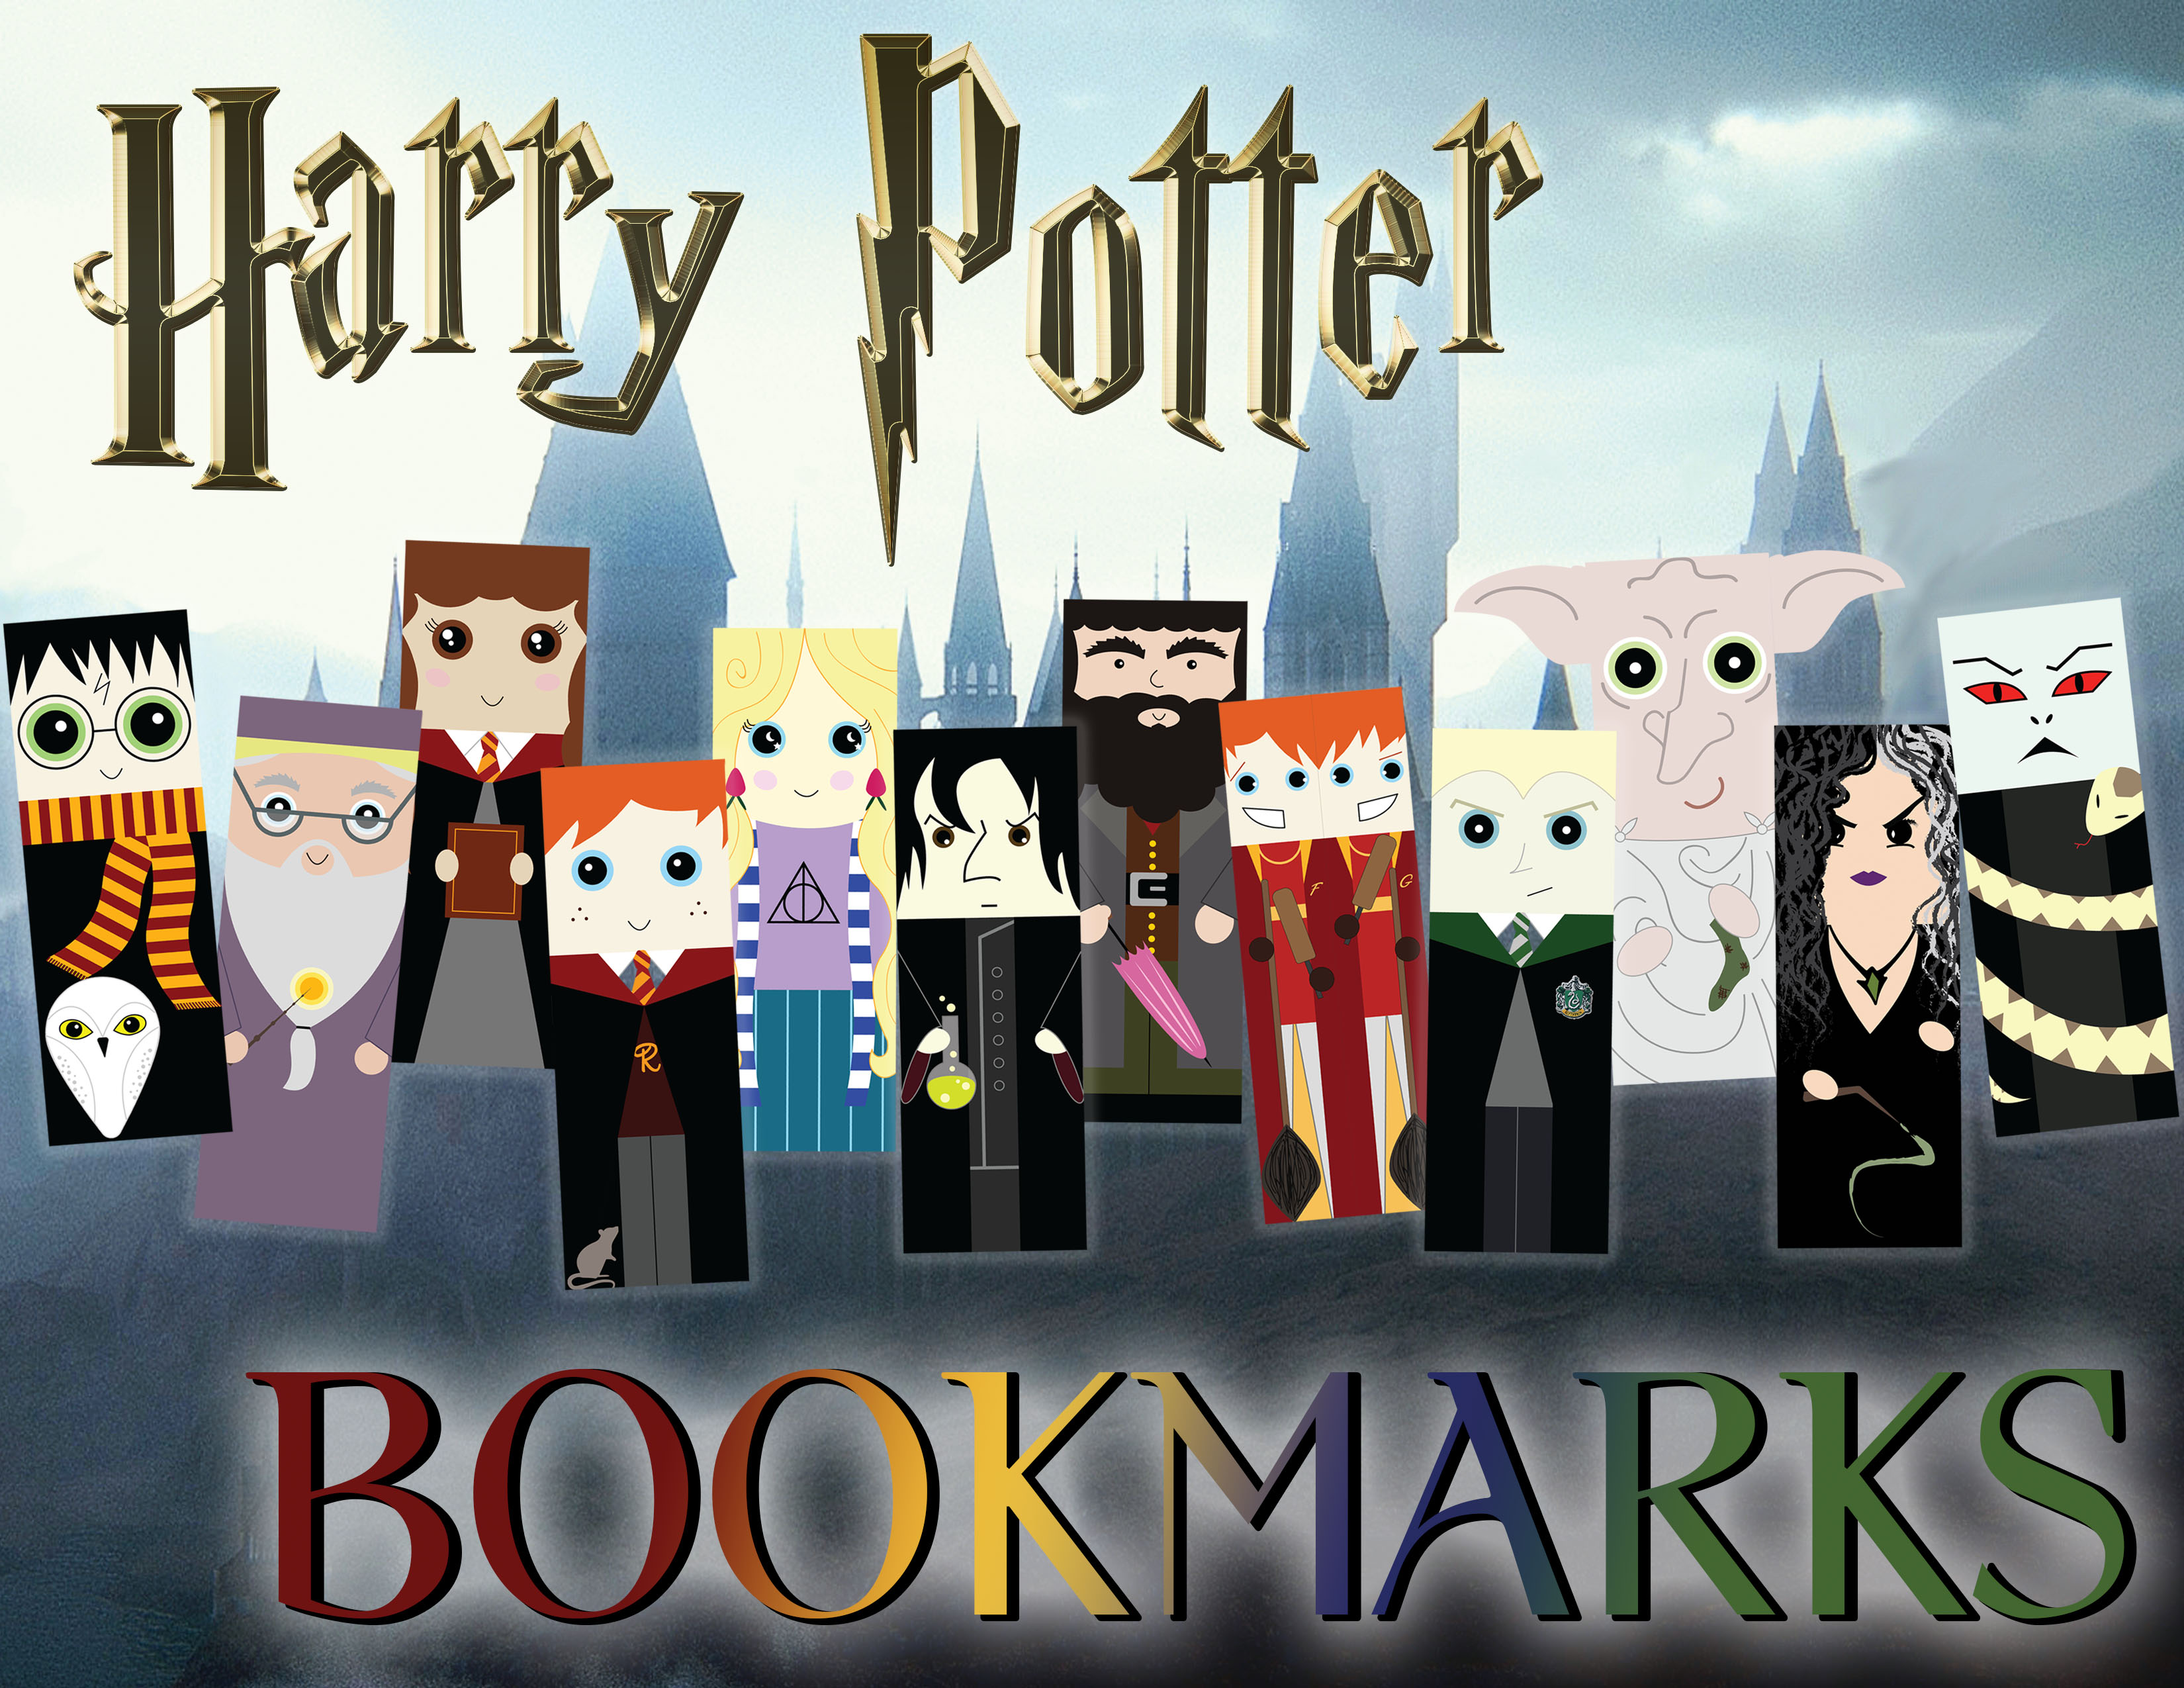 Harry Potter Bookmarks Ad